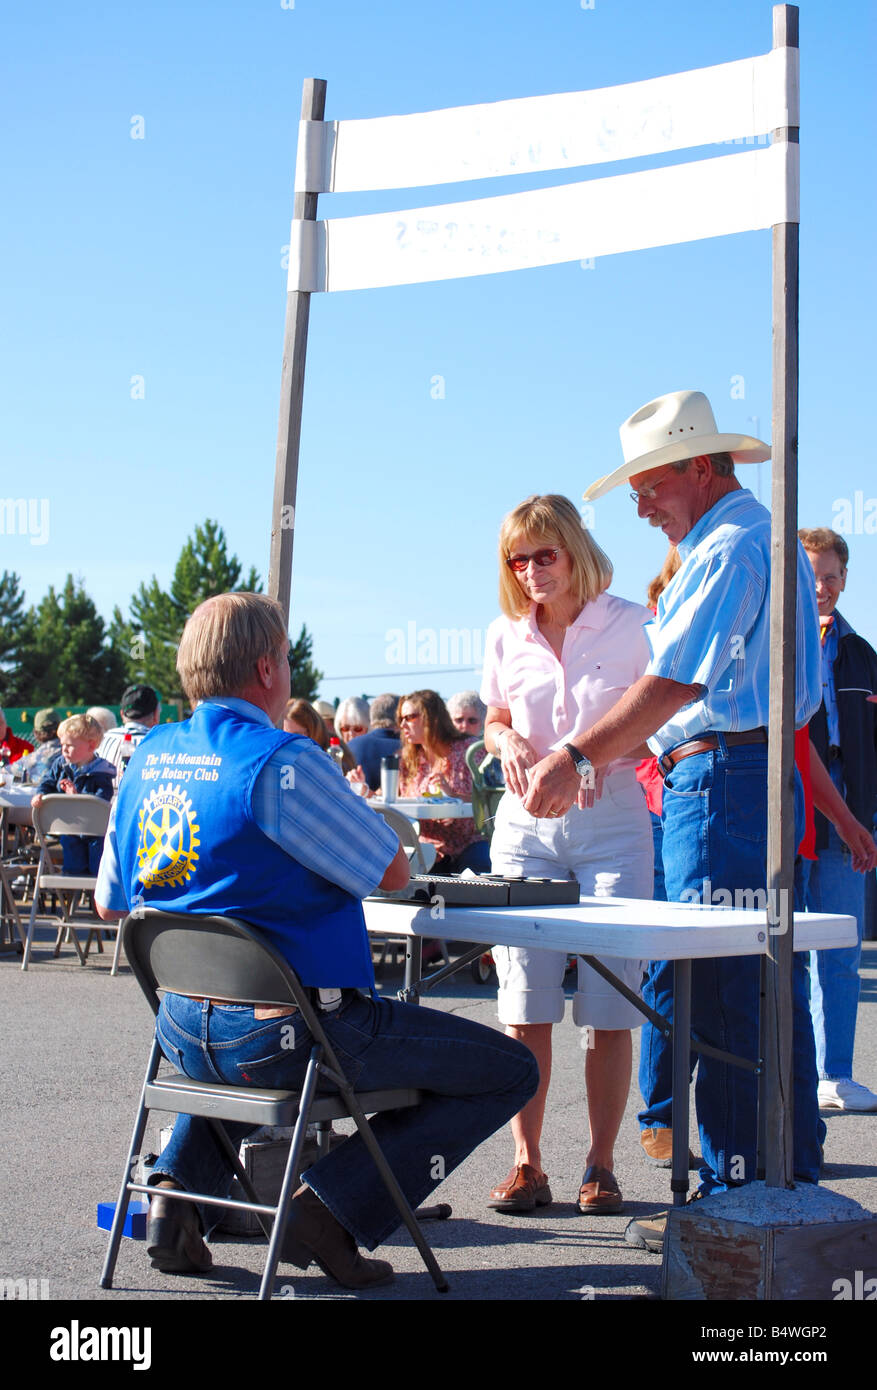 Cowboy and his wife buying tickets for a rotary club pancake breakfast - Stock Image